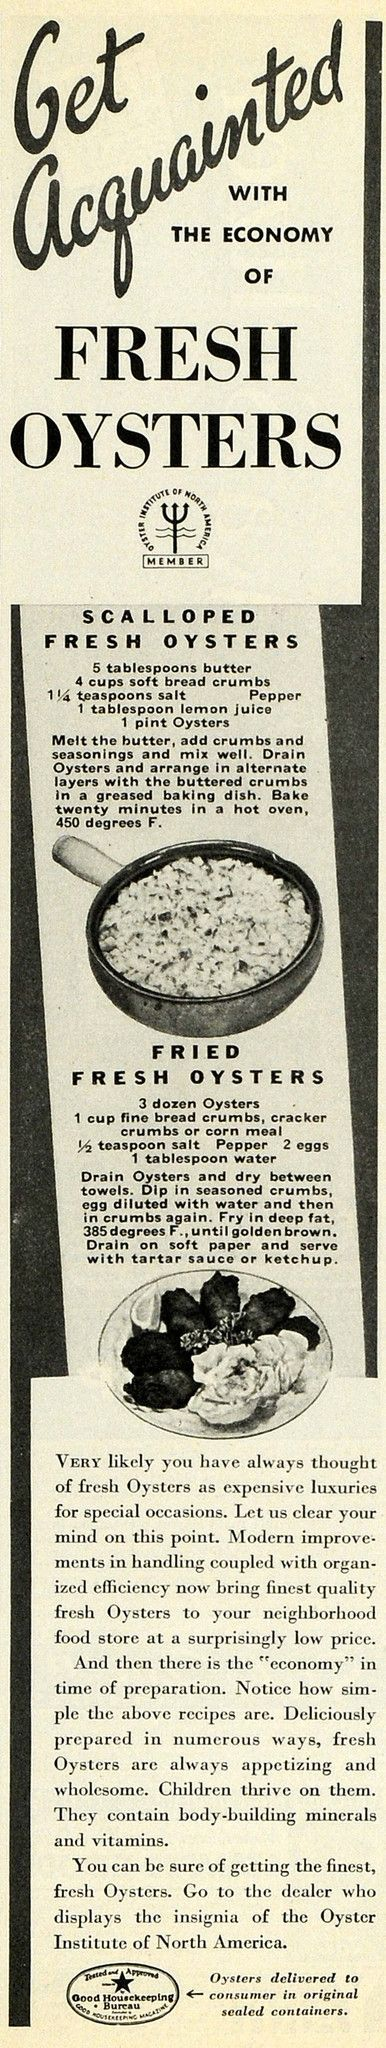 This is a small original 1936 black and white print ad for the Oyster Institute of North America, featuring a recipe for Scalloped Fresh Oysters and Fried Fresh Oysters. CONDITION This 75+ year old It